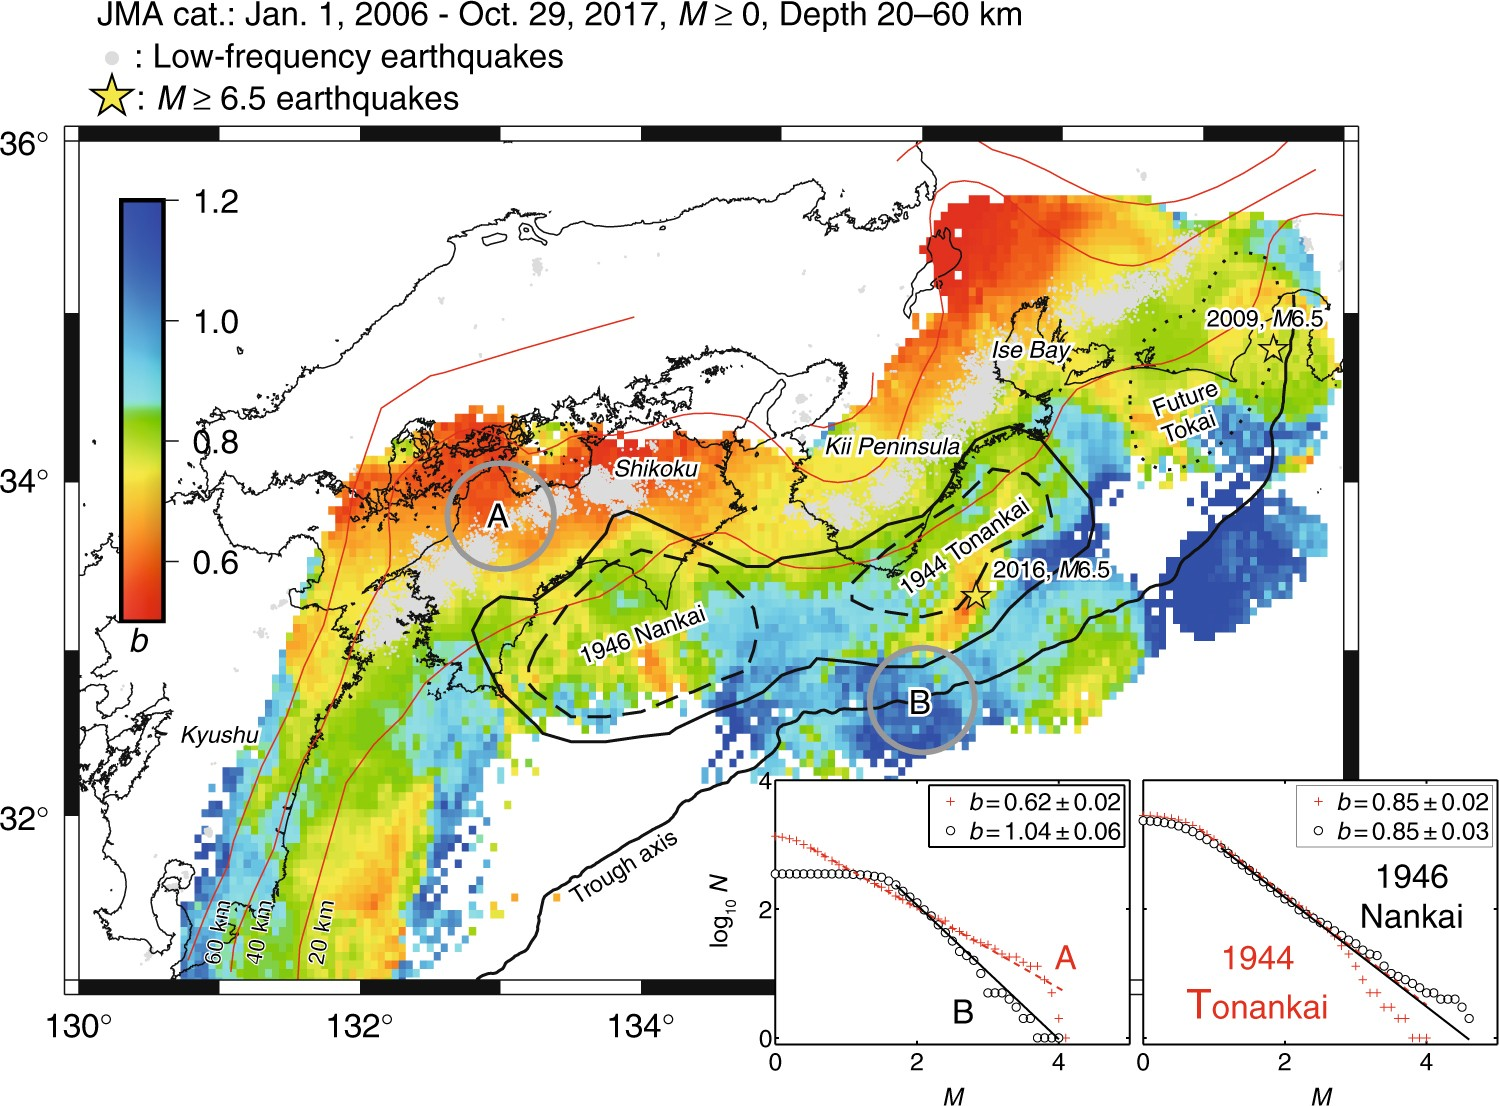 A b map implying the first eastern rupture of the Nankai